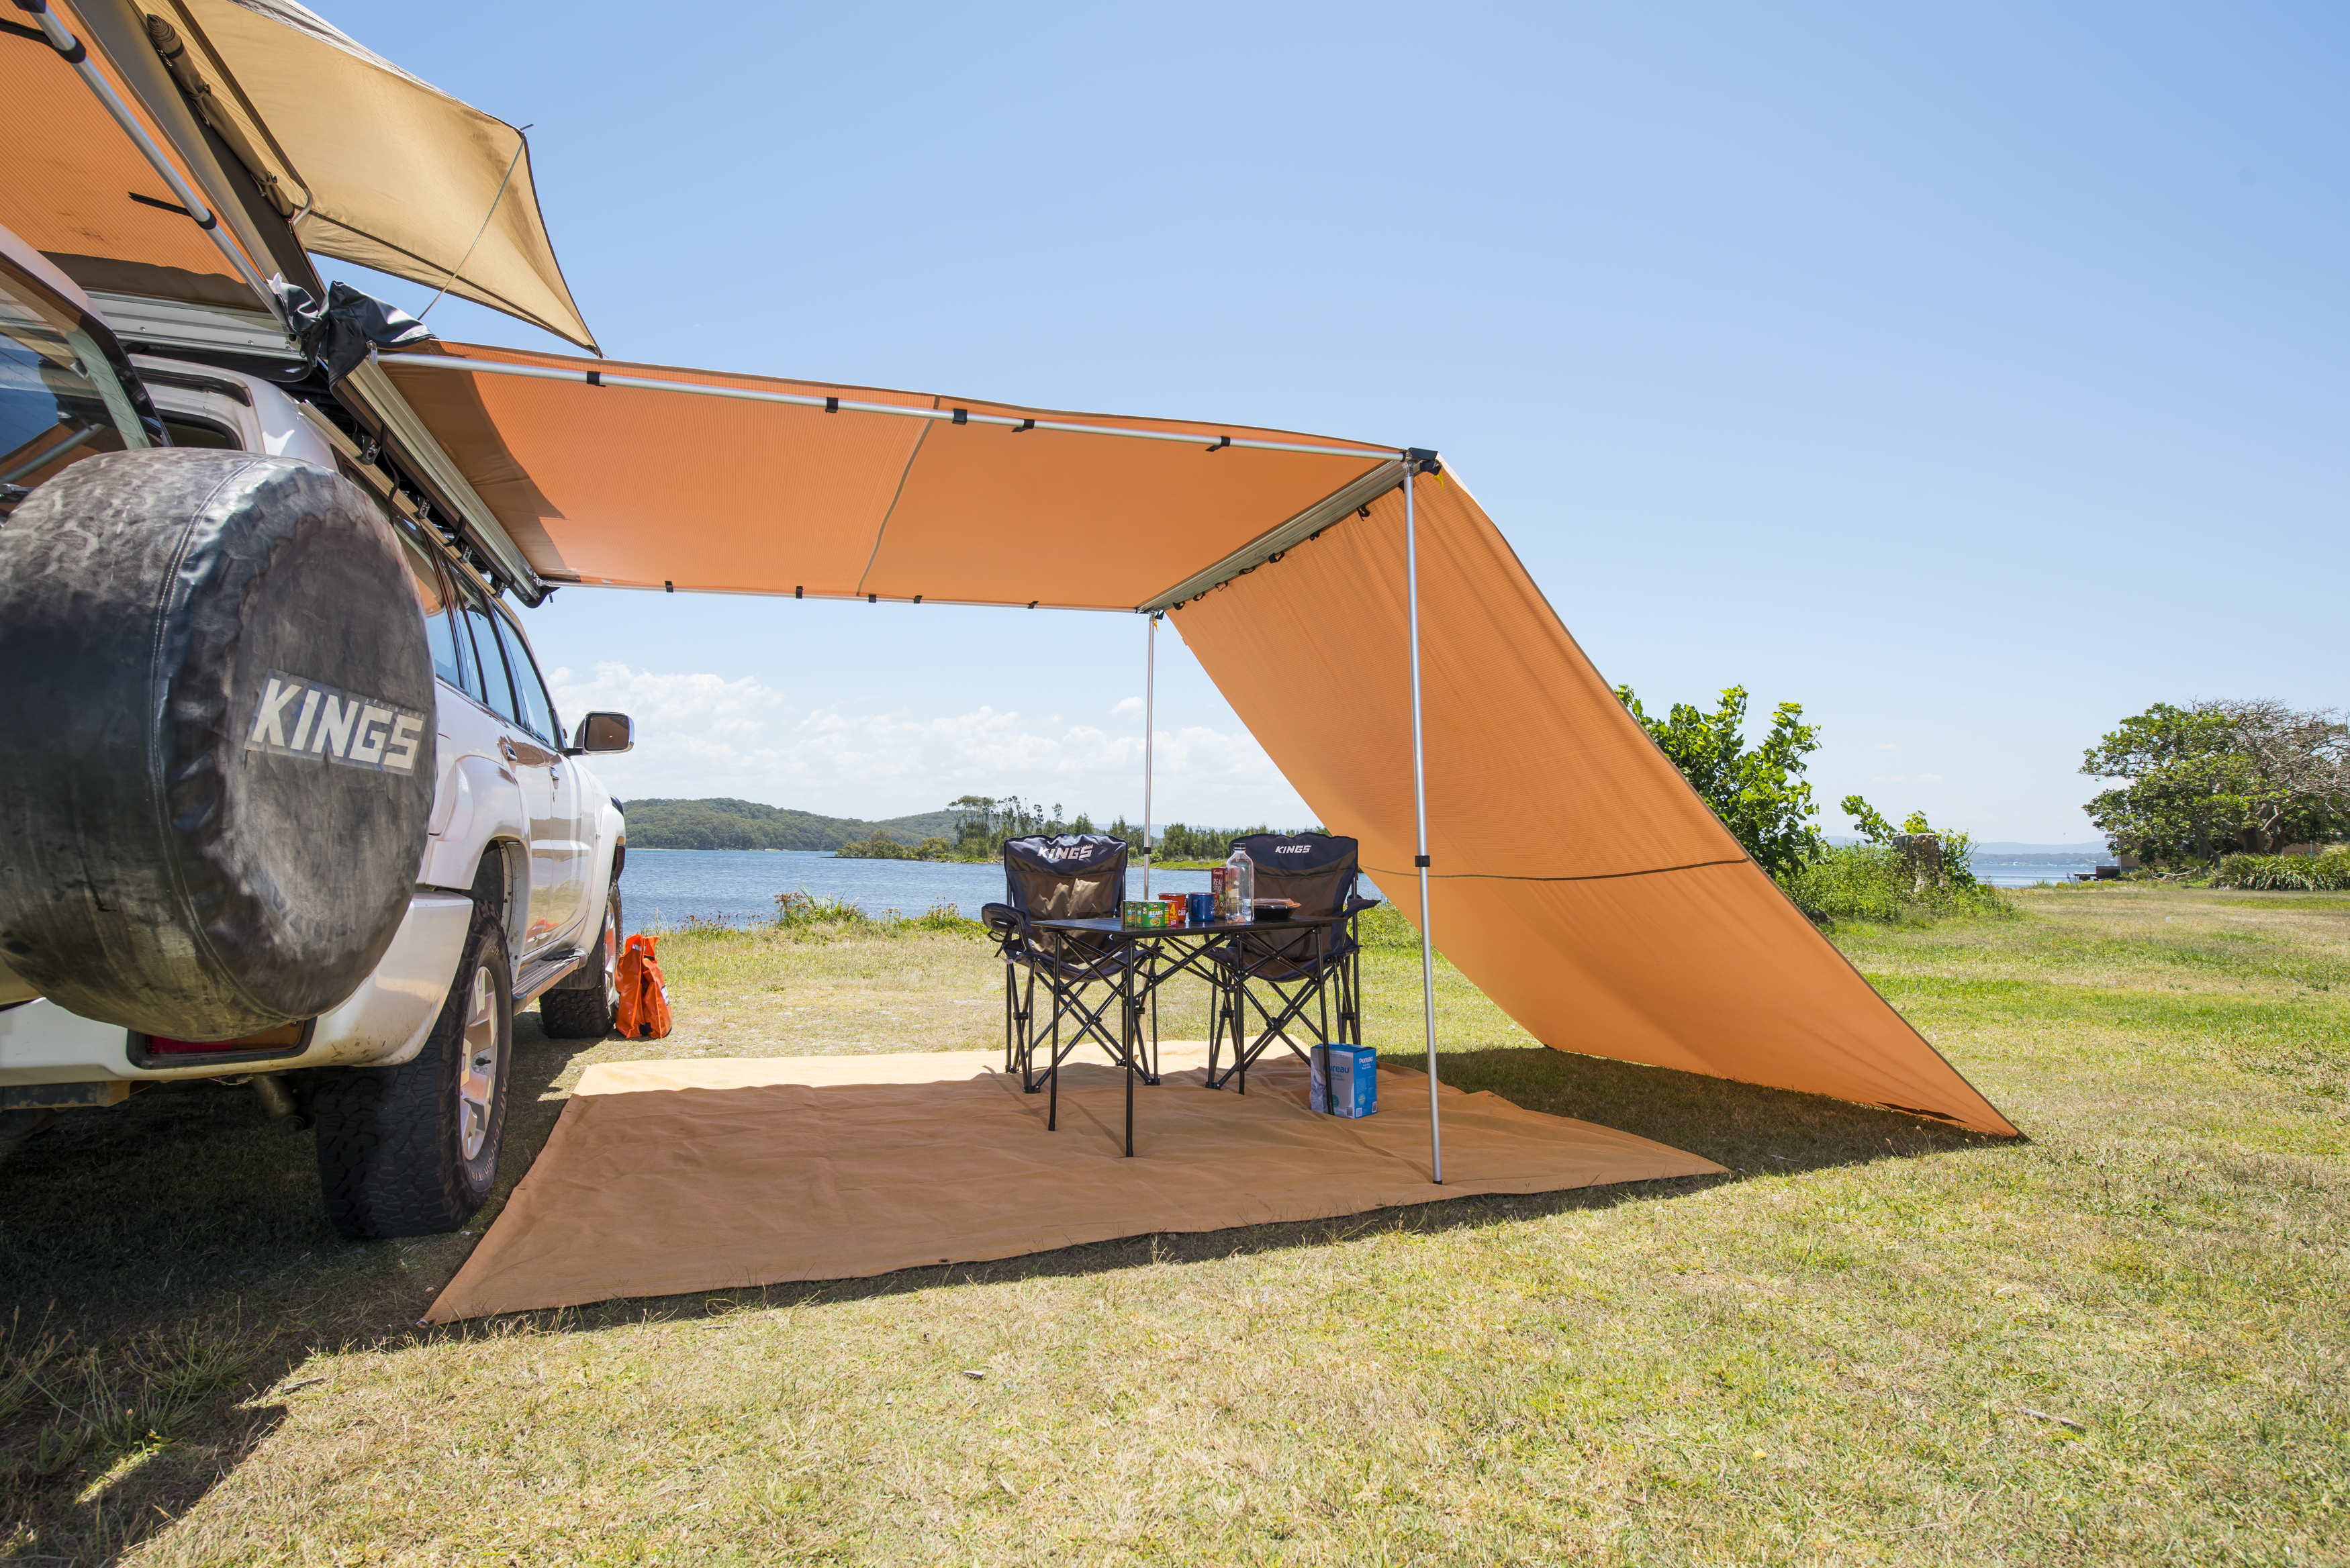 A Roof Top Tents have changed the way Aussies camp! - image 171214-Belmont-location-2-21-of-34 on https://www.4wdsupacentre.com.au/news